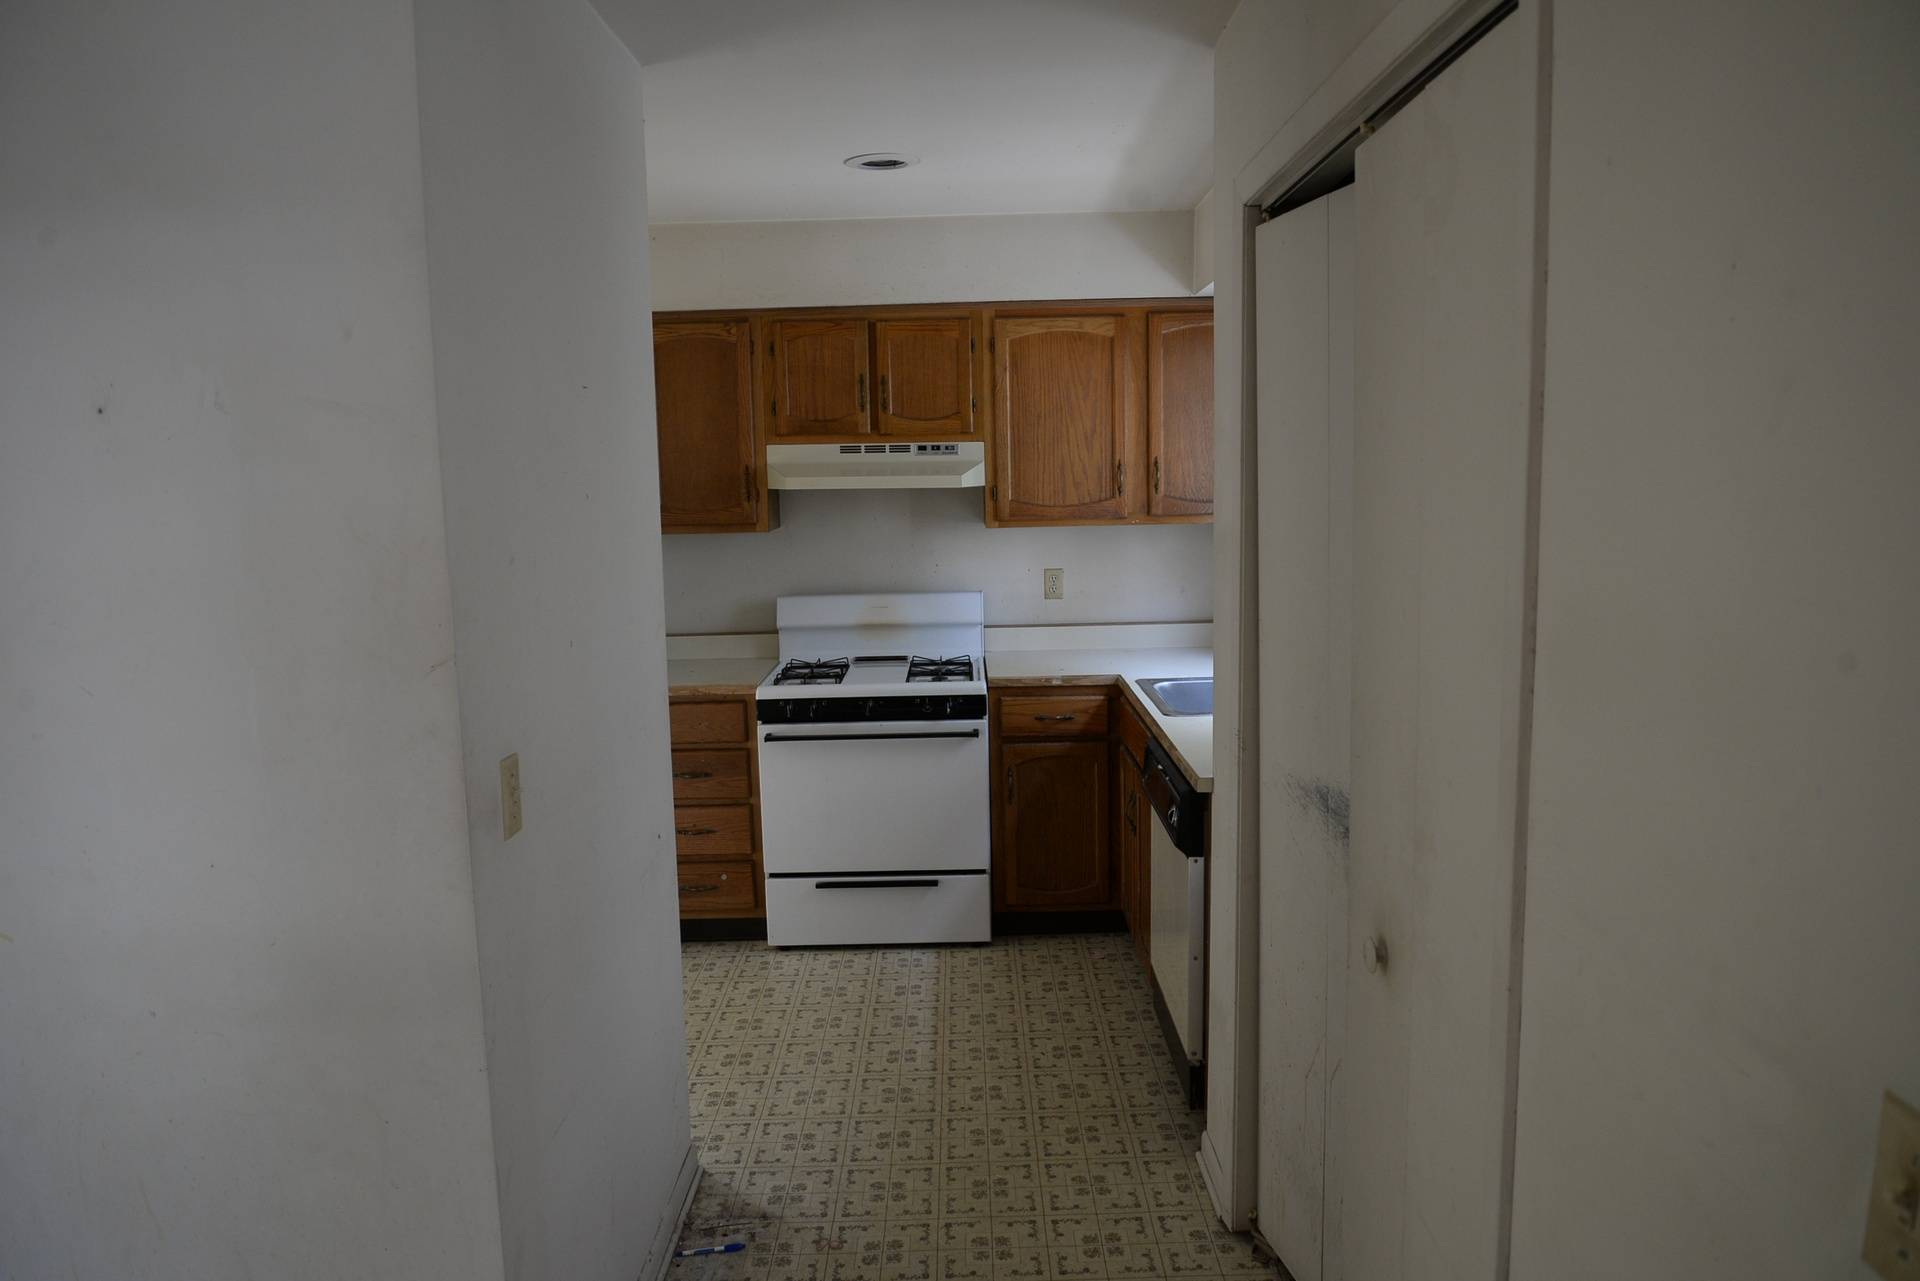 Foyer to the kitchen before